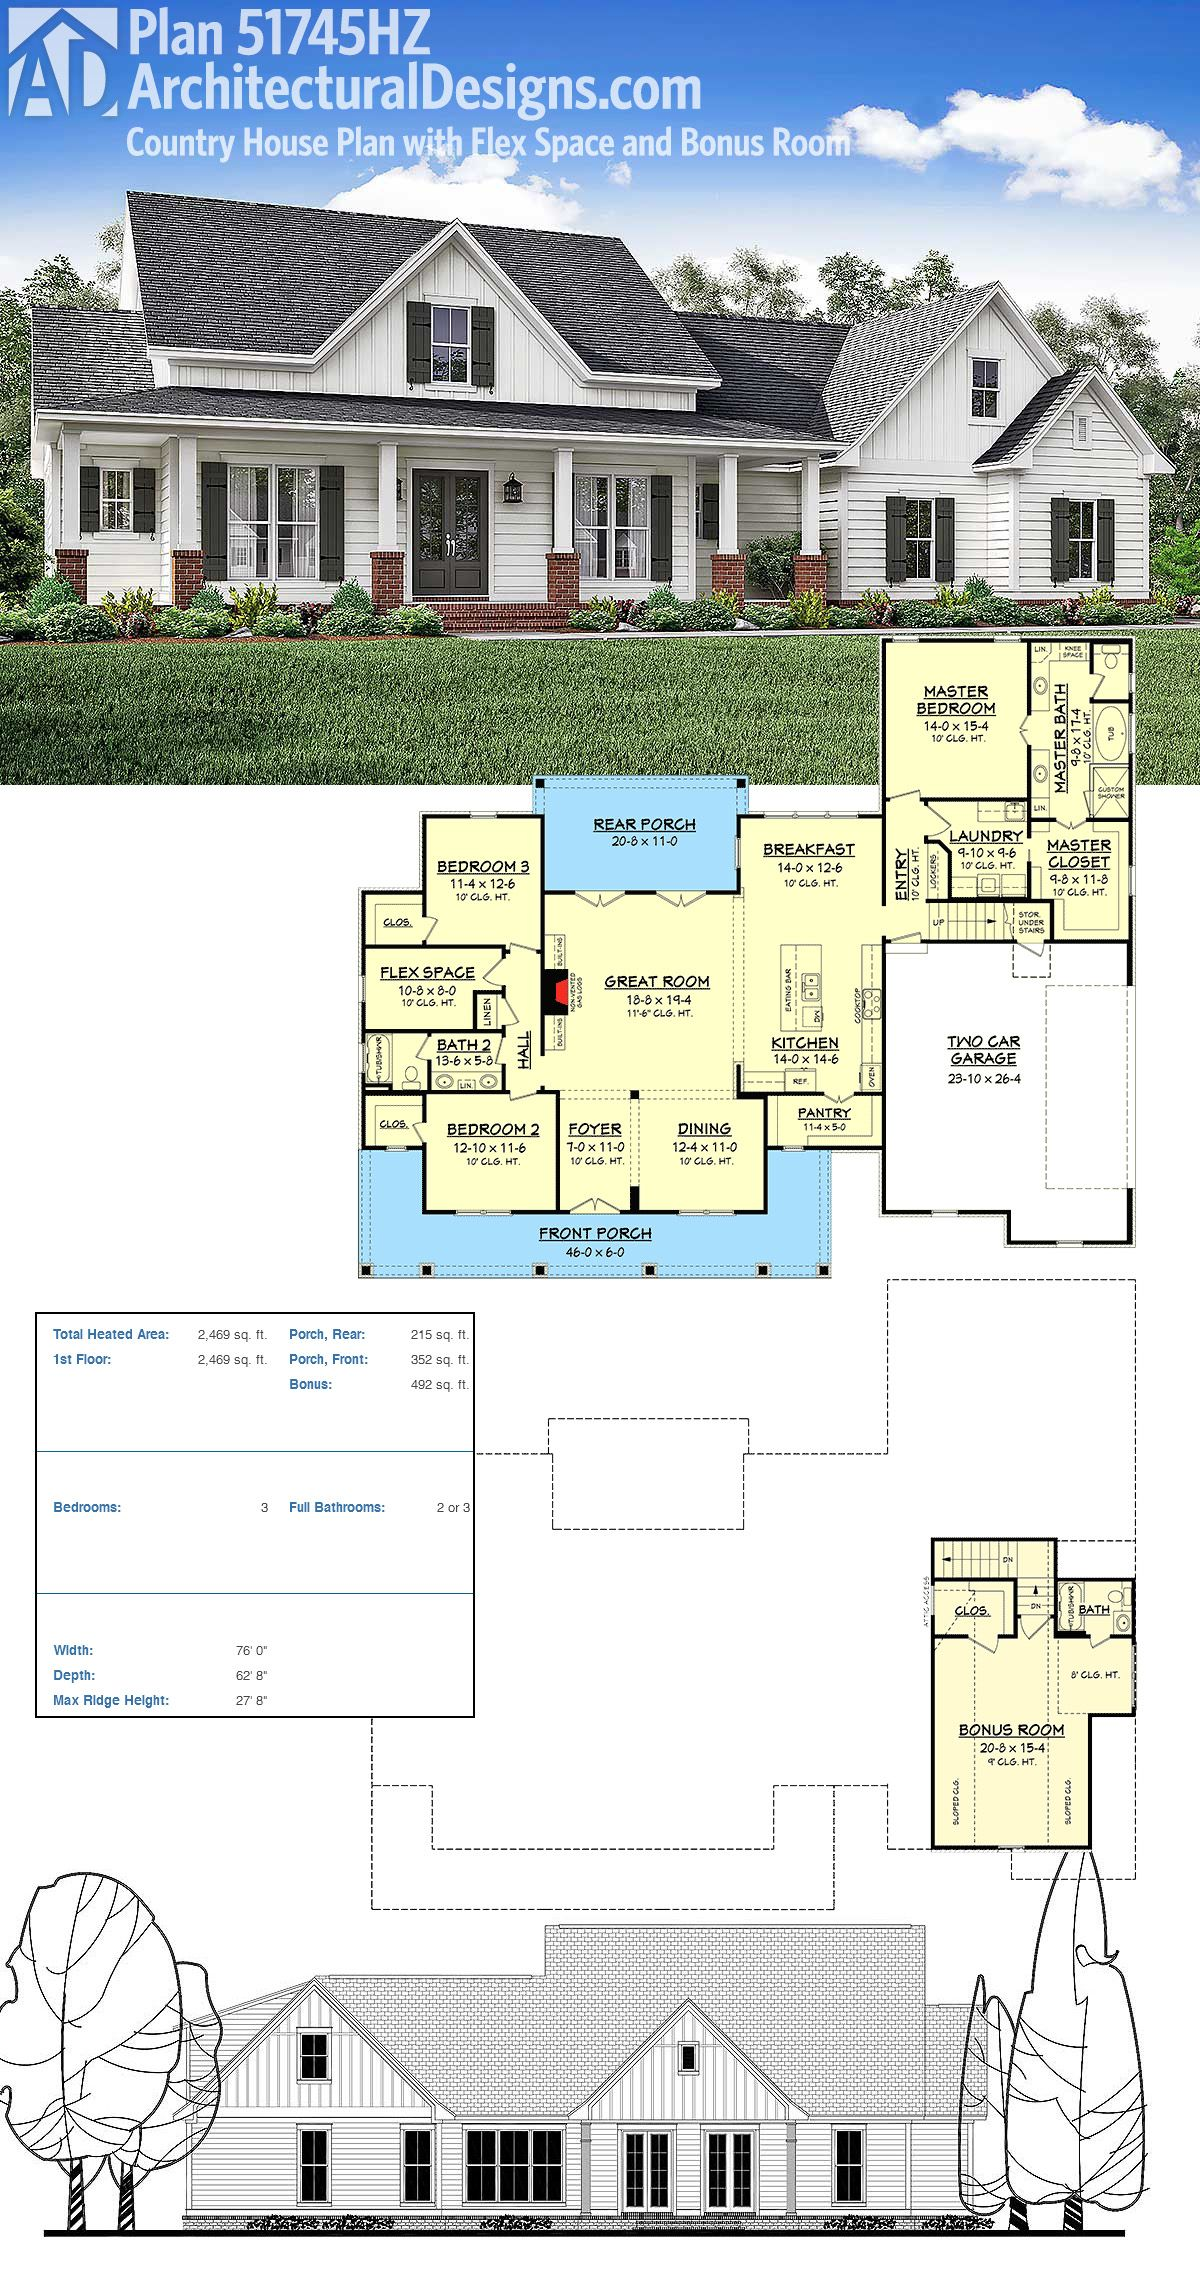 architectural designs house plan 51745hz gives you 3 bedrooms and over 2400 square feet of living